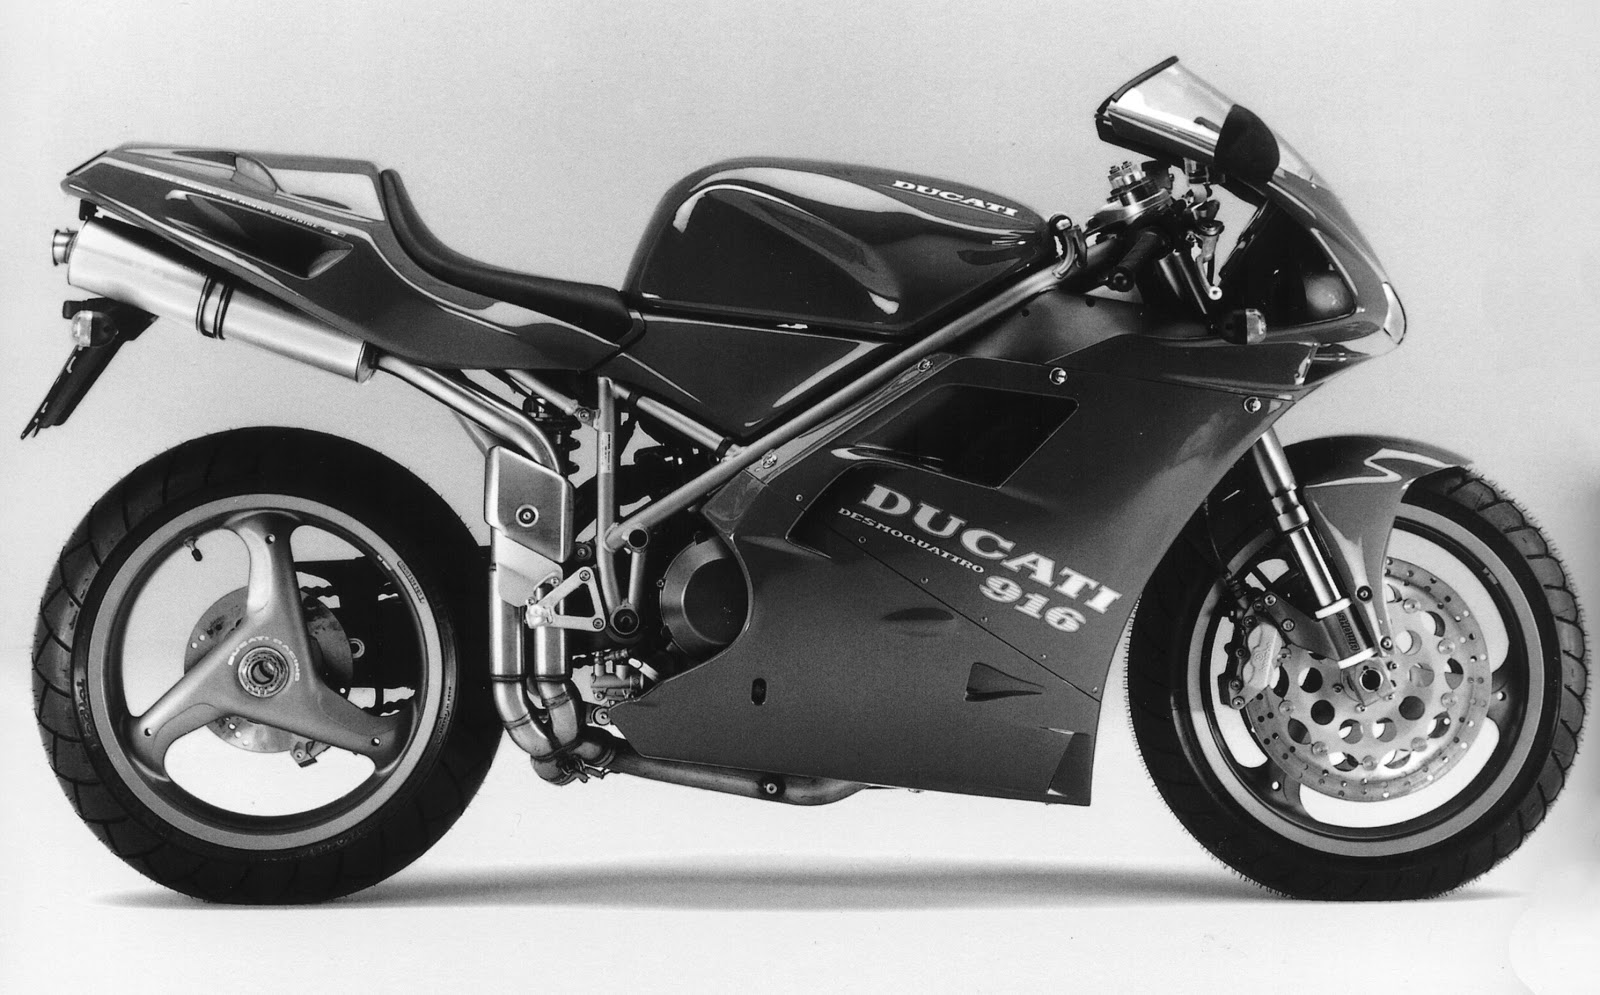 oddbike riding the legend the ducati 916. Black Bedroom Furniture Sets. Home Design Ideas